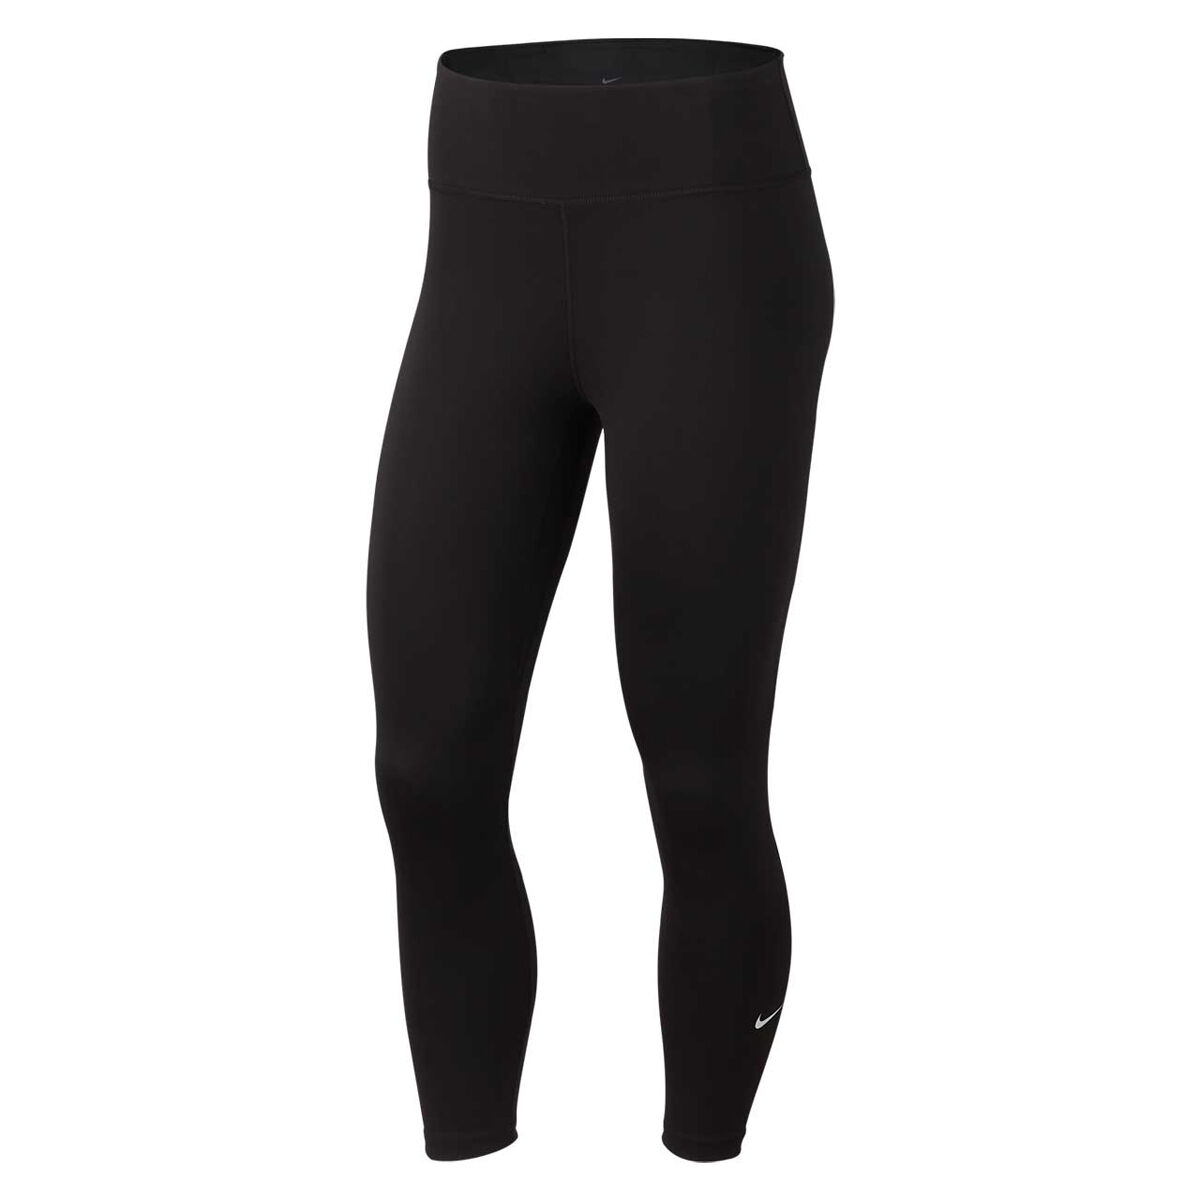 Women's Pants & Tights.